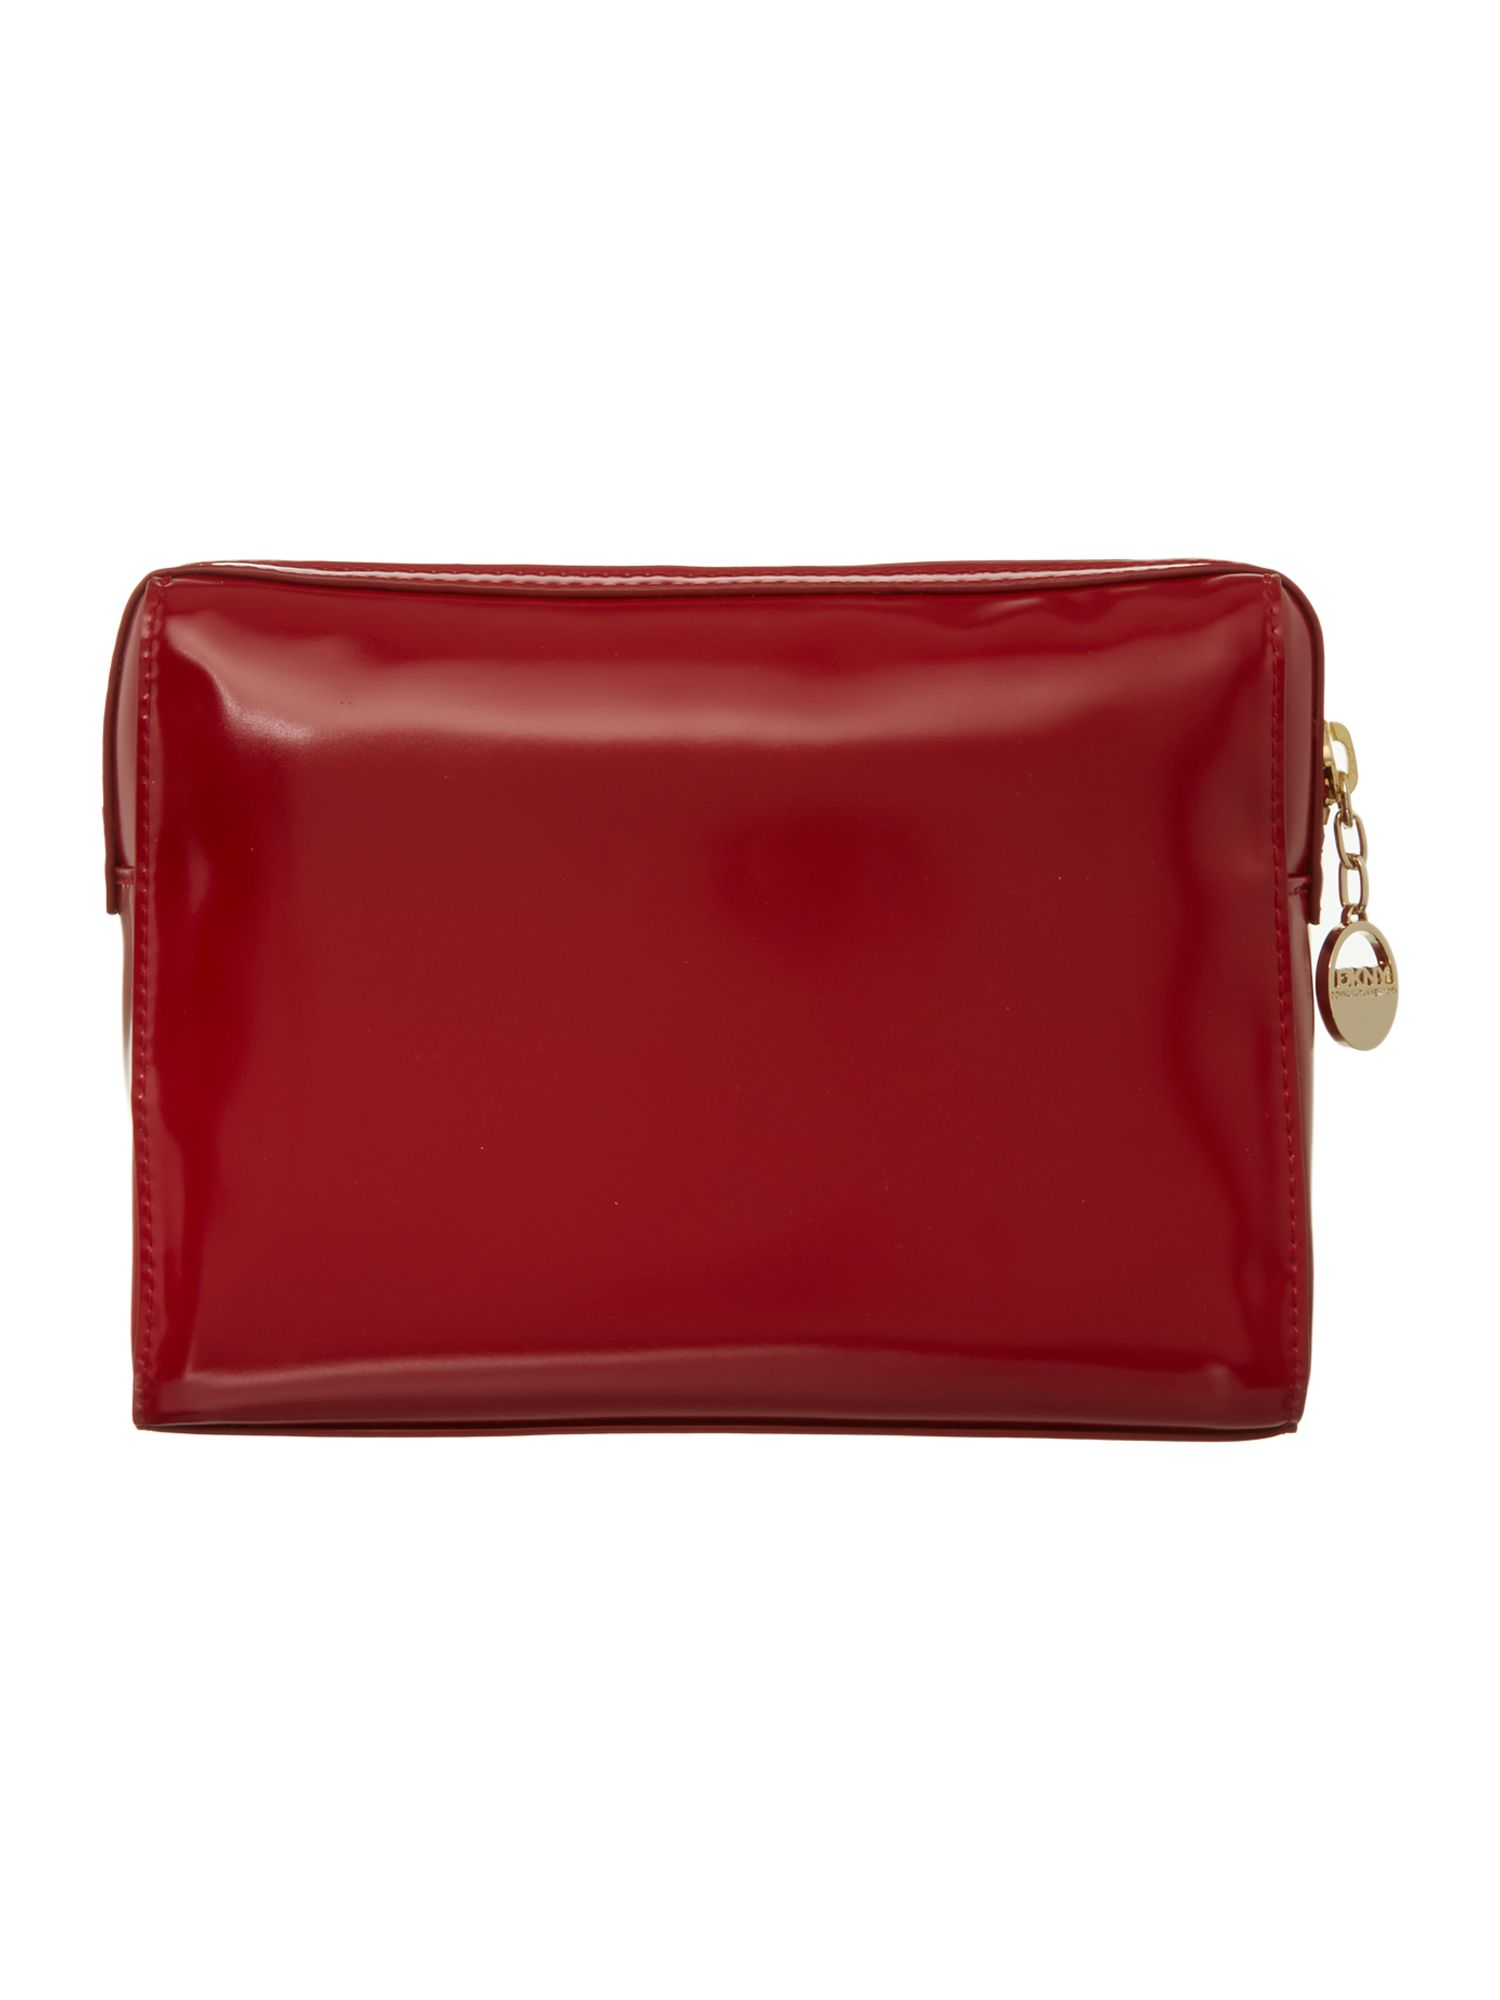 Hudson red cosmetic bag